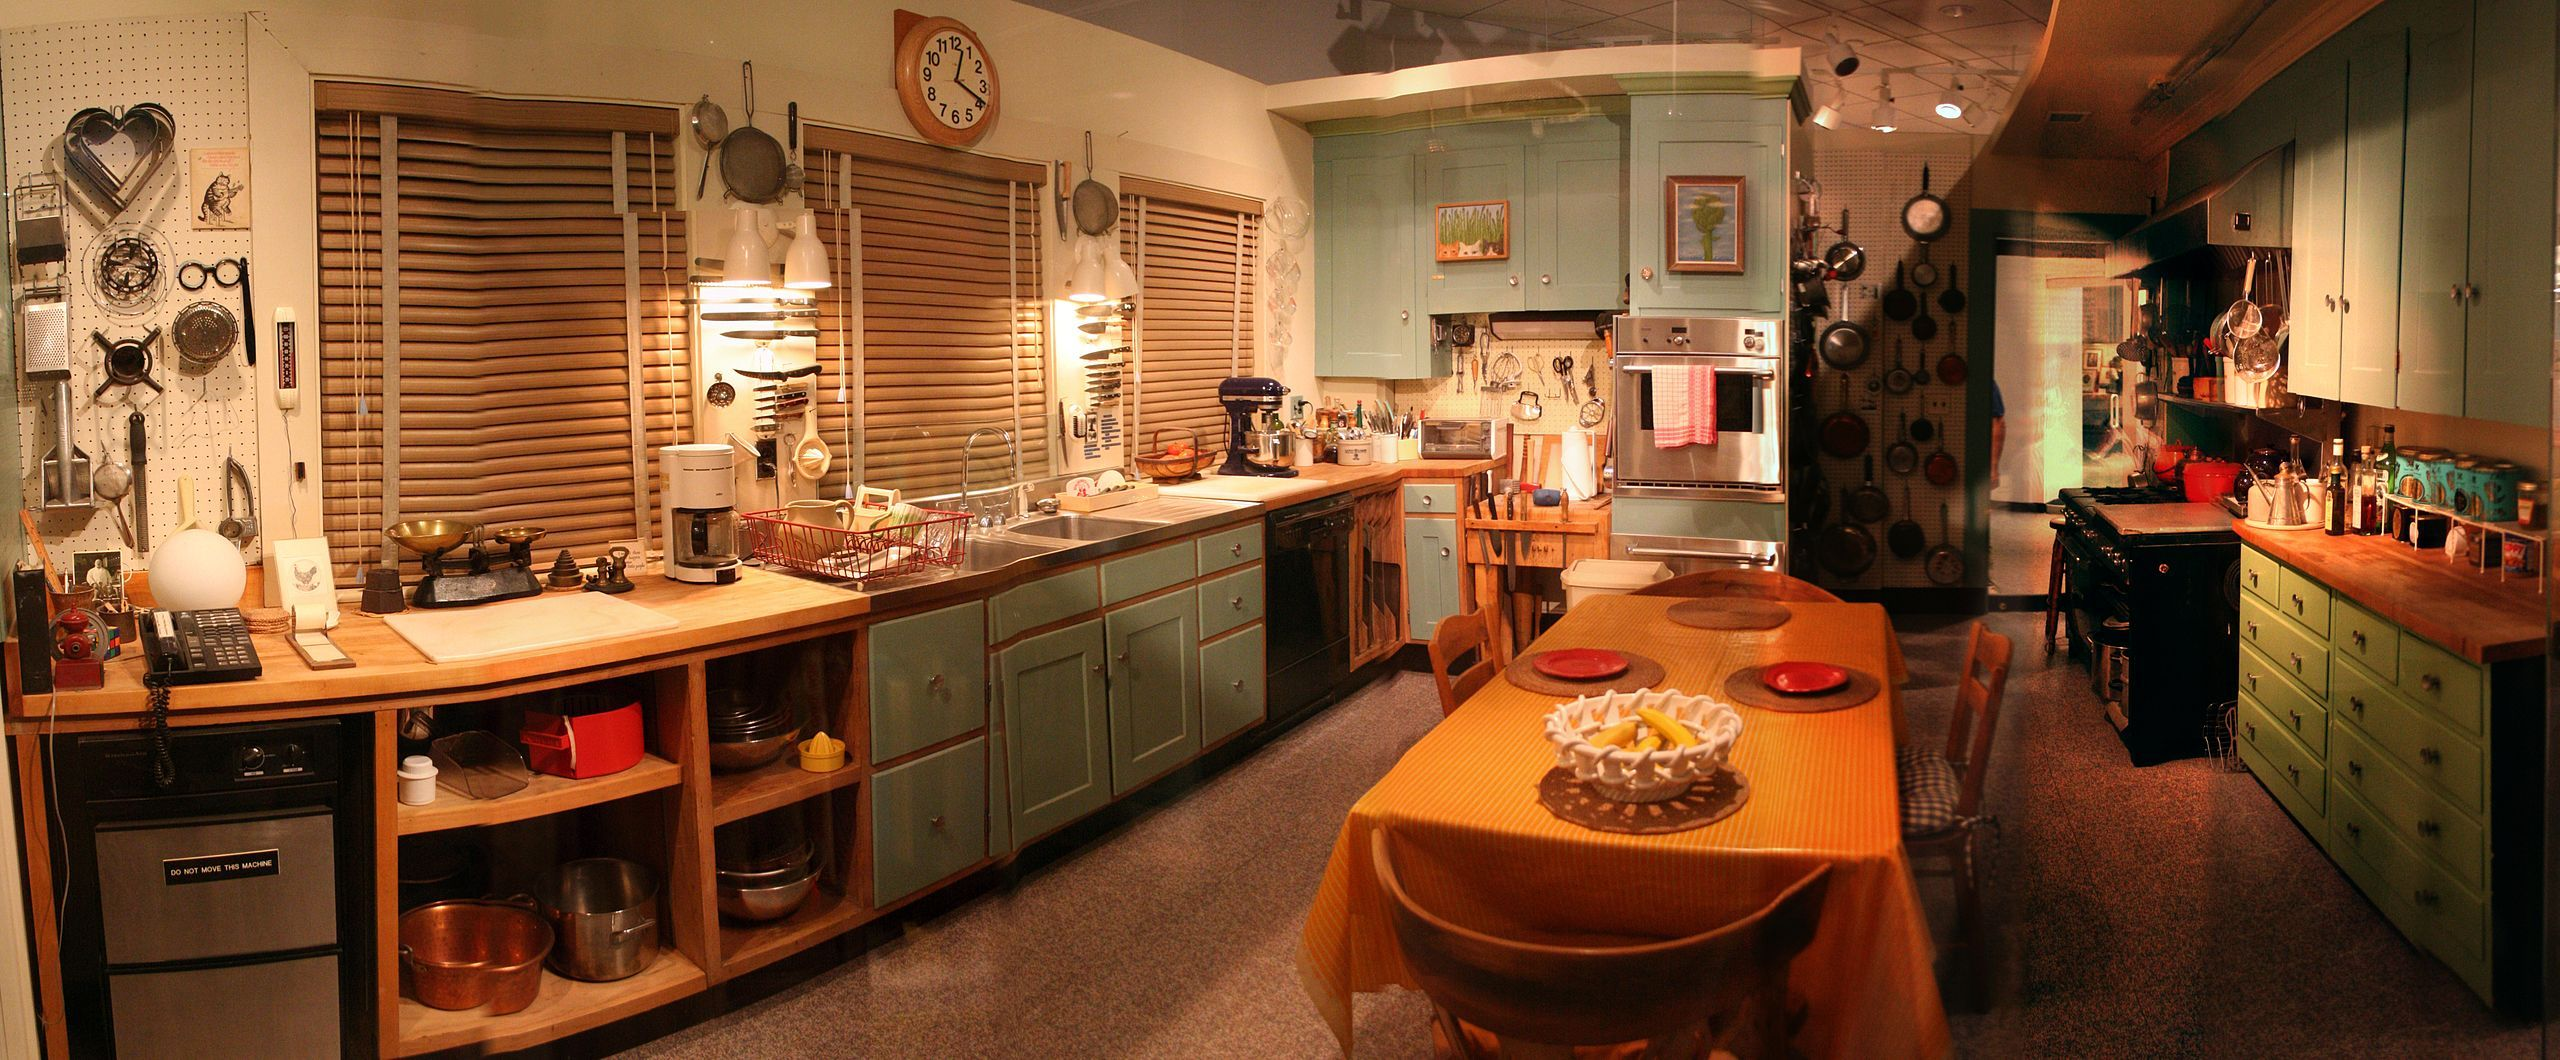 Julia Child S Kitchen Julia Child Kitchen Kids Kitchen Kitchen